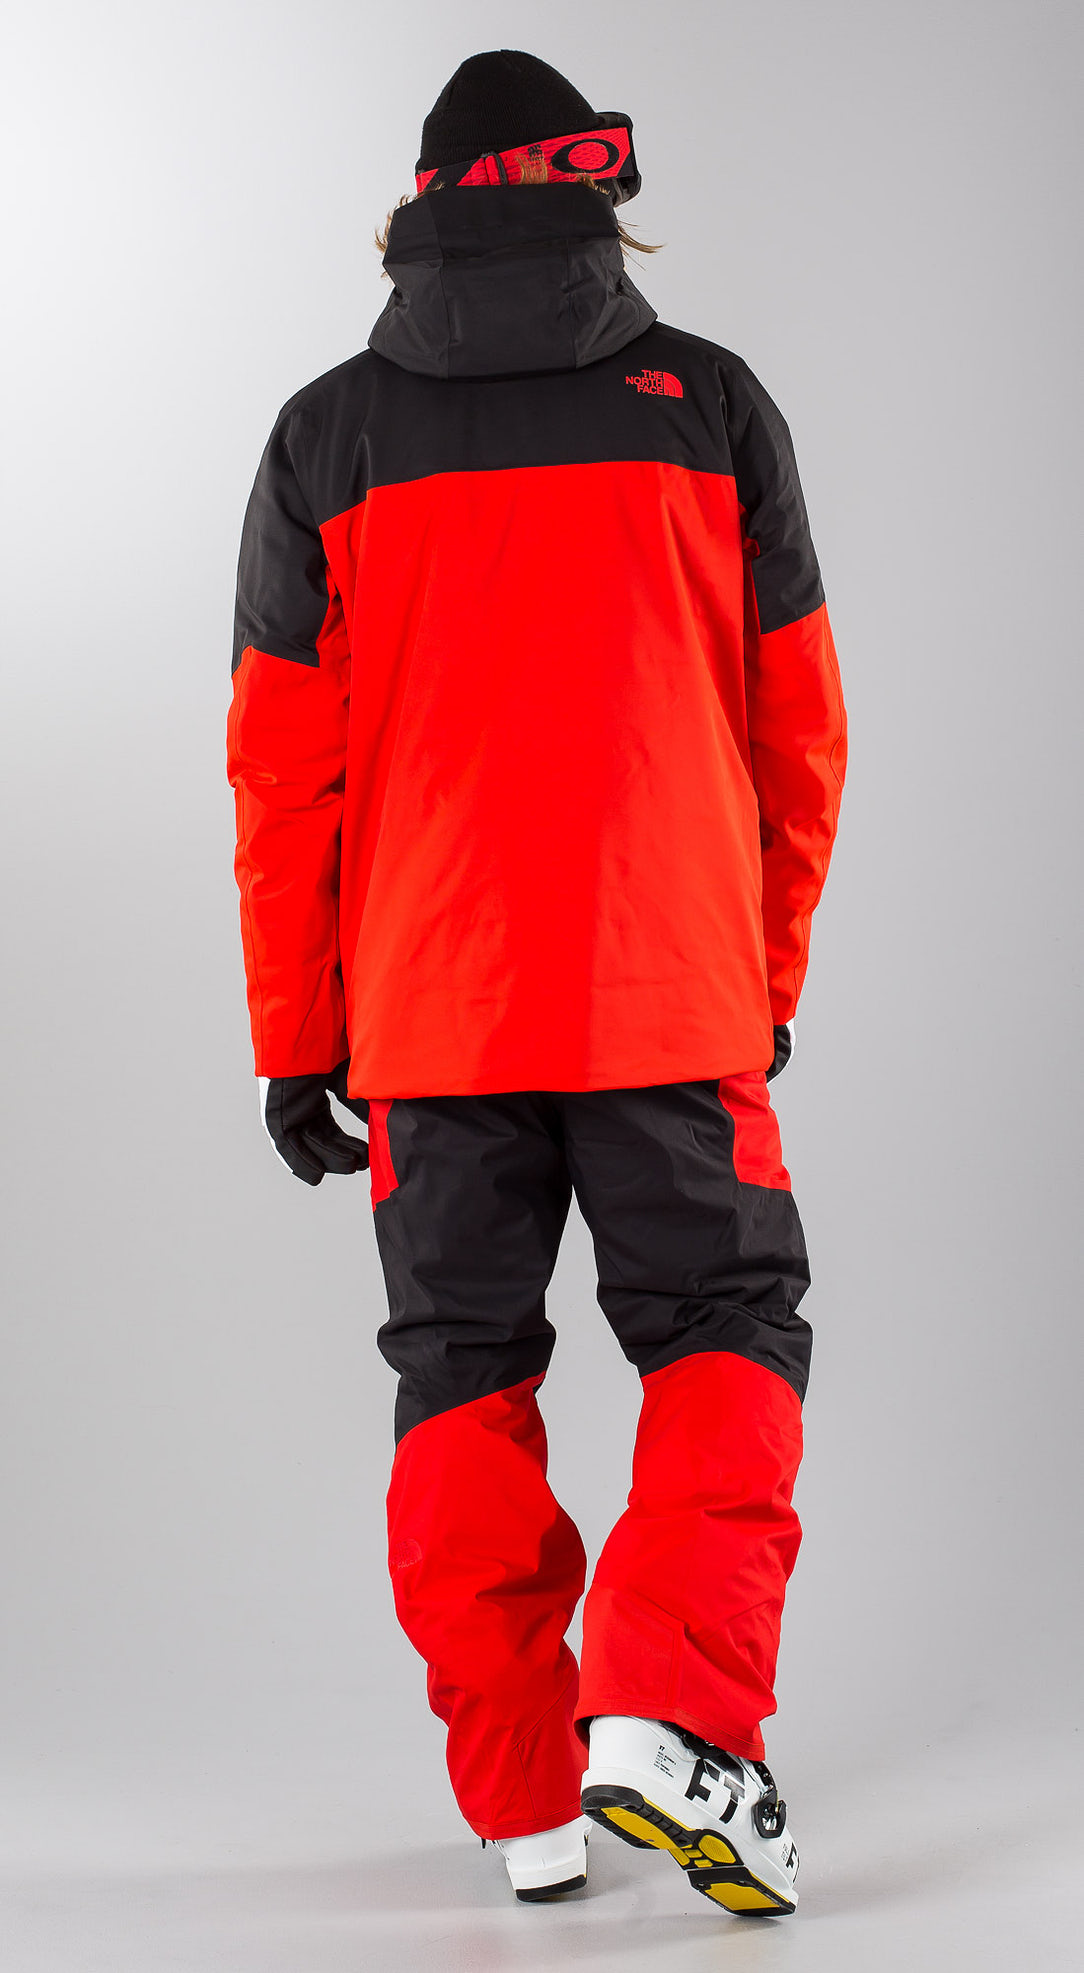 pretty nice 19eac d32b1 The North Face Chakal Red/Black Skibekleidung - Ridestore